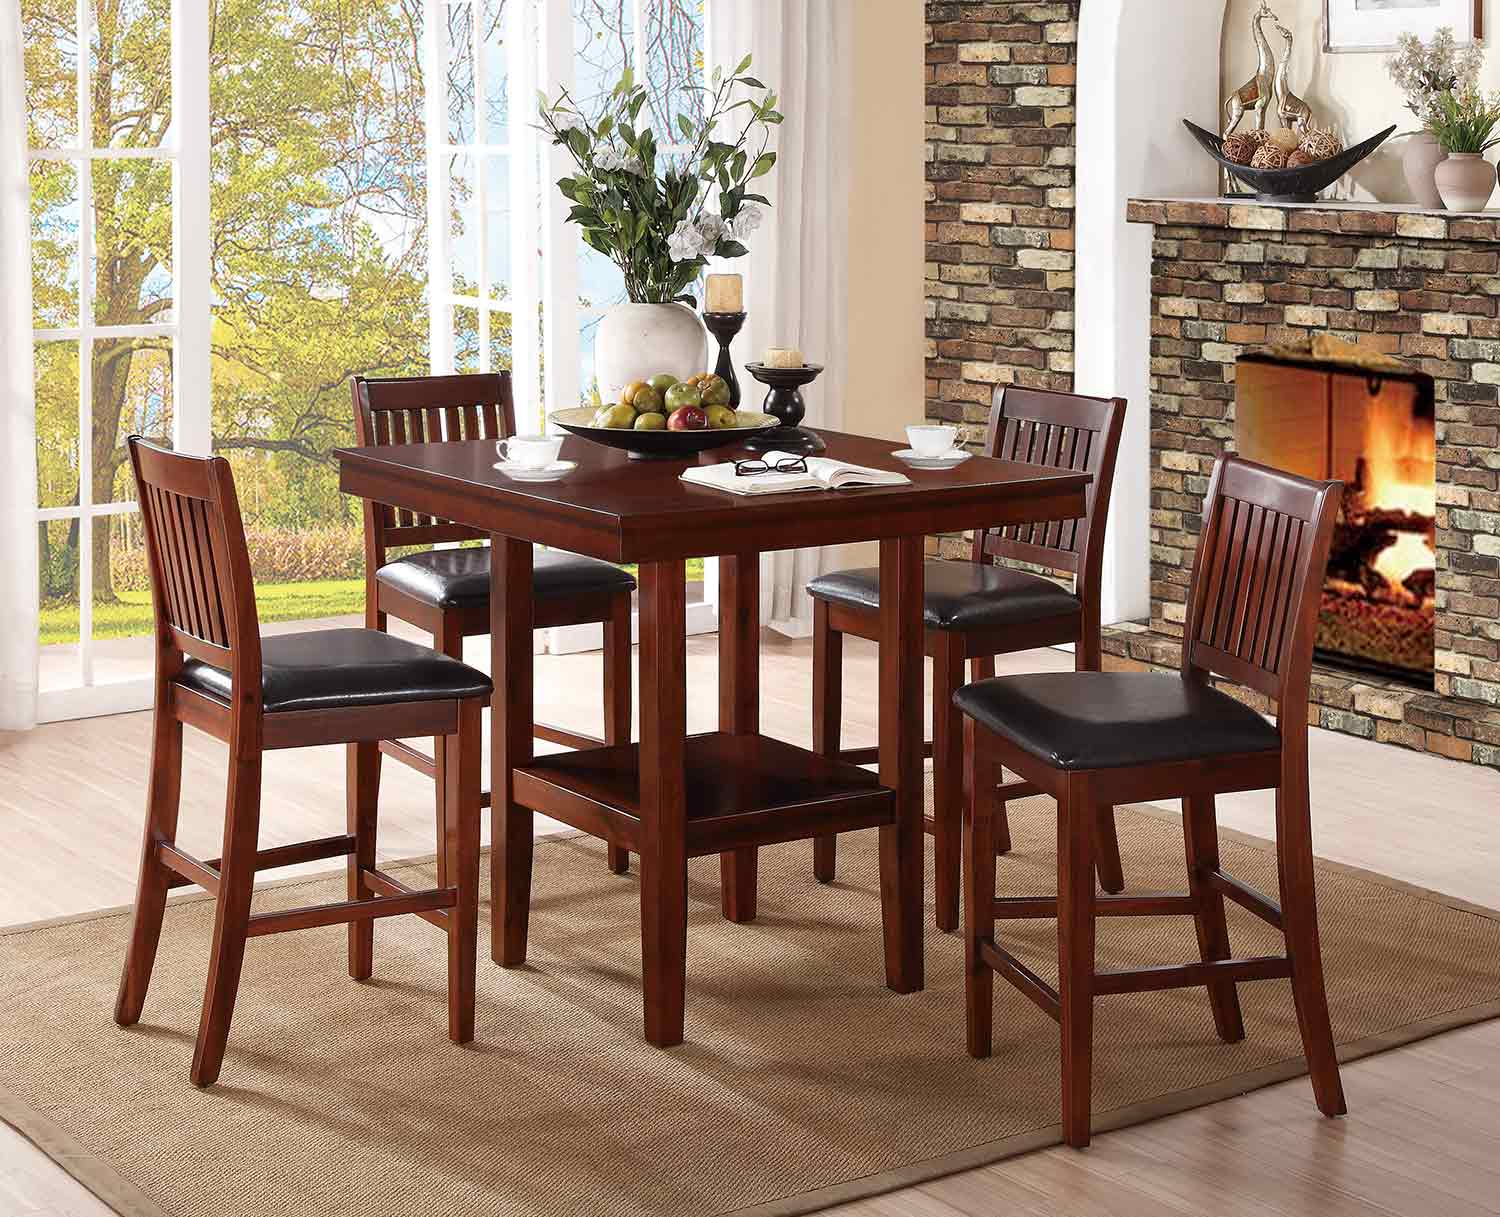 Homelegance Galena 5-Piece Pack Counter Height Dining Set - Warm Cherry